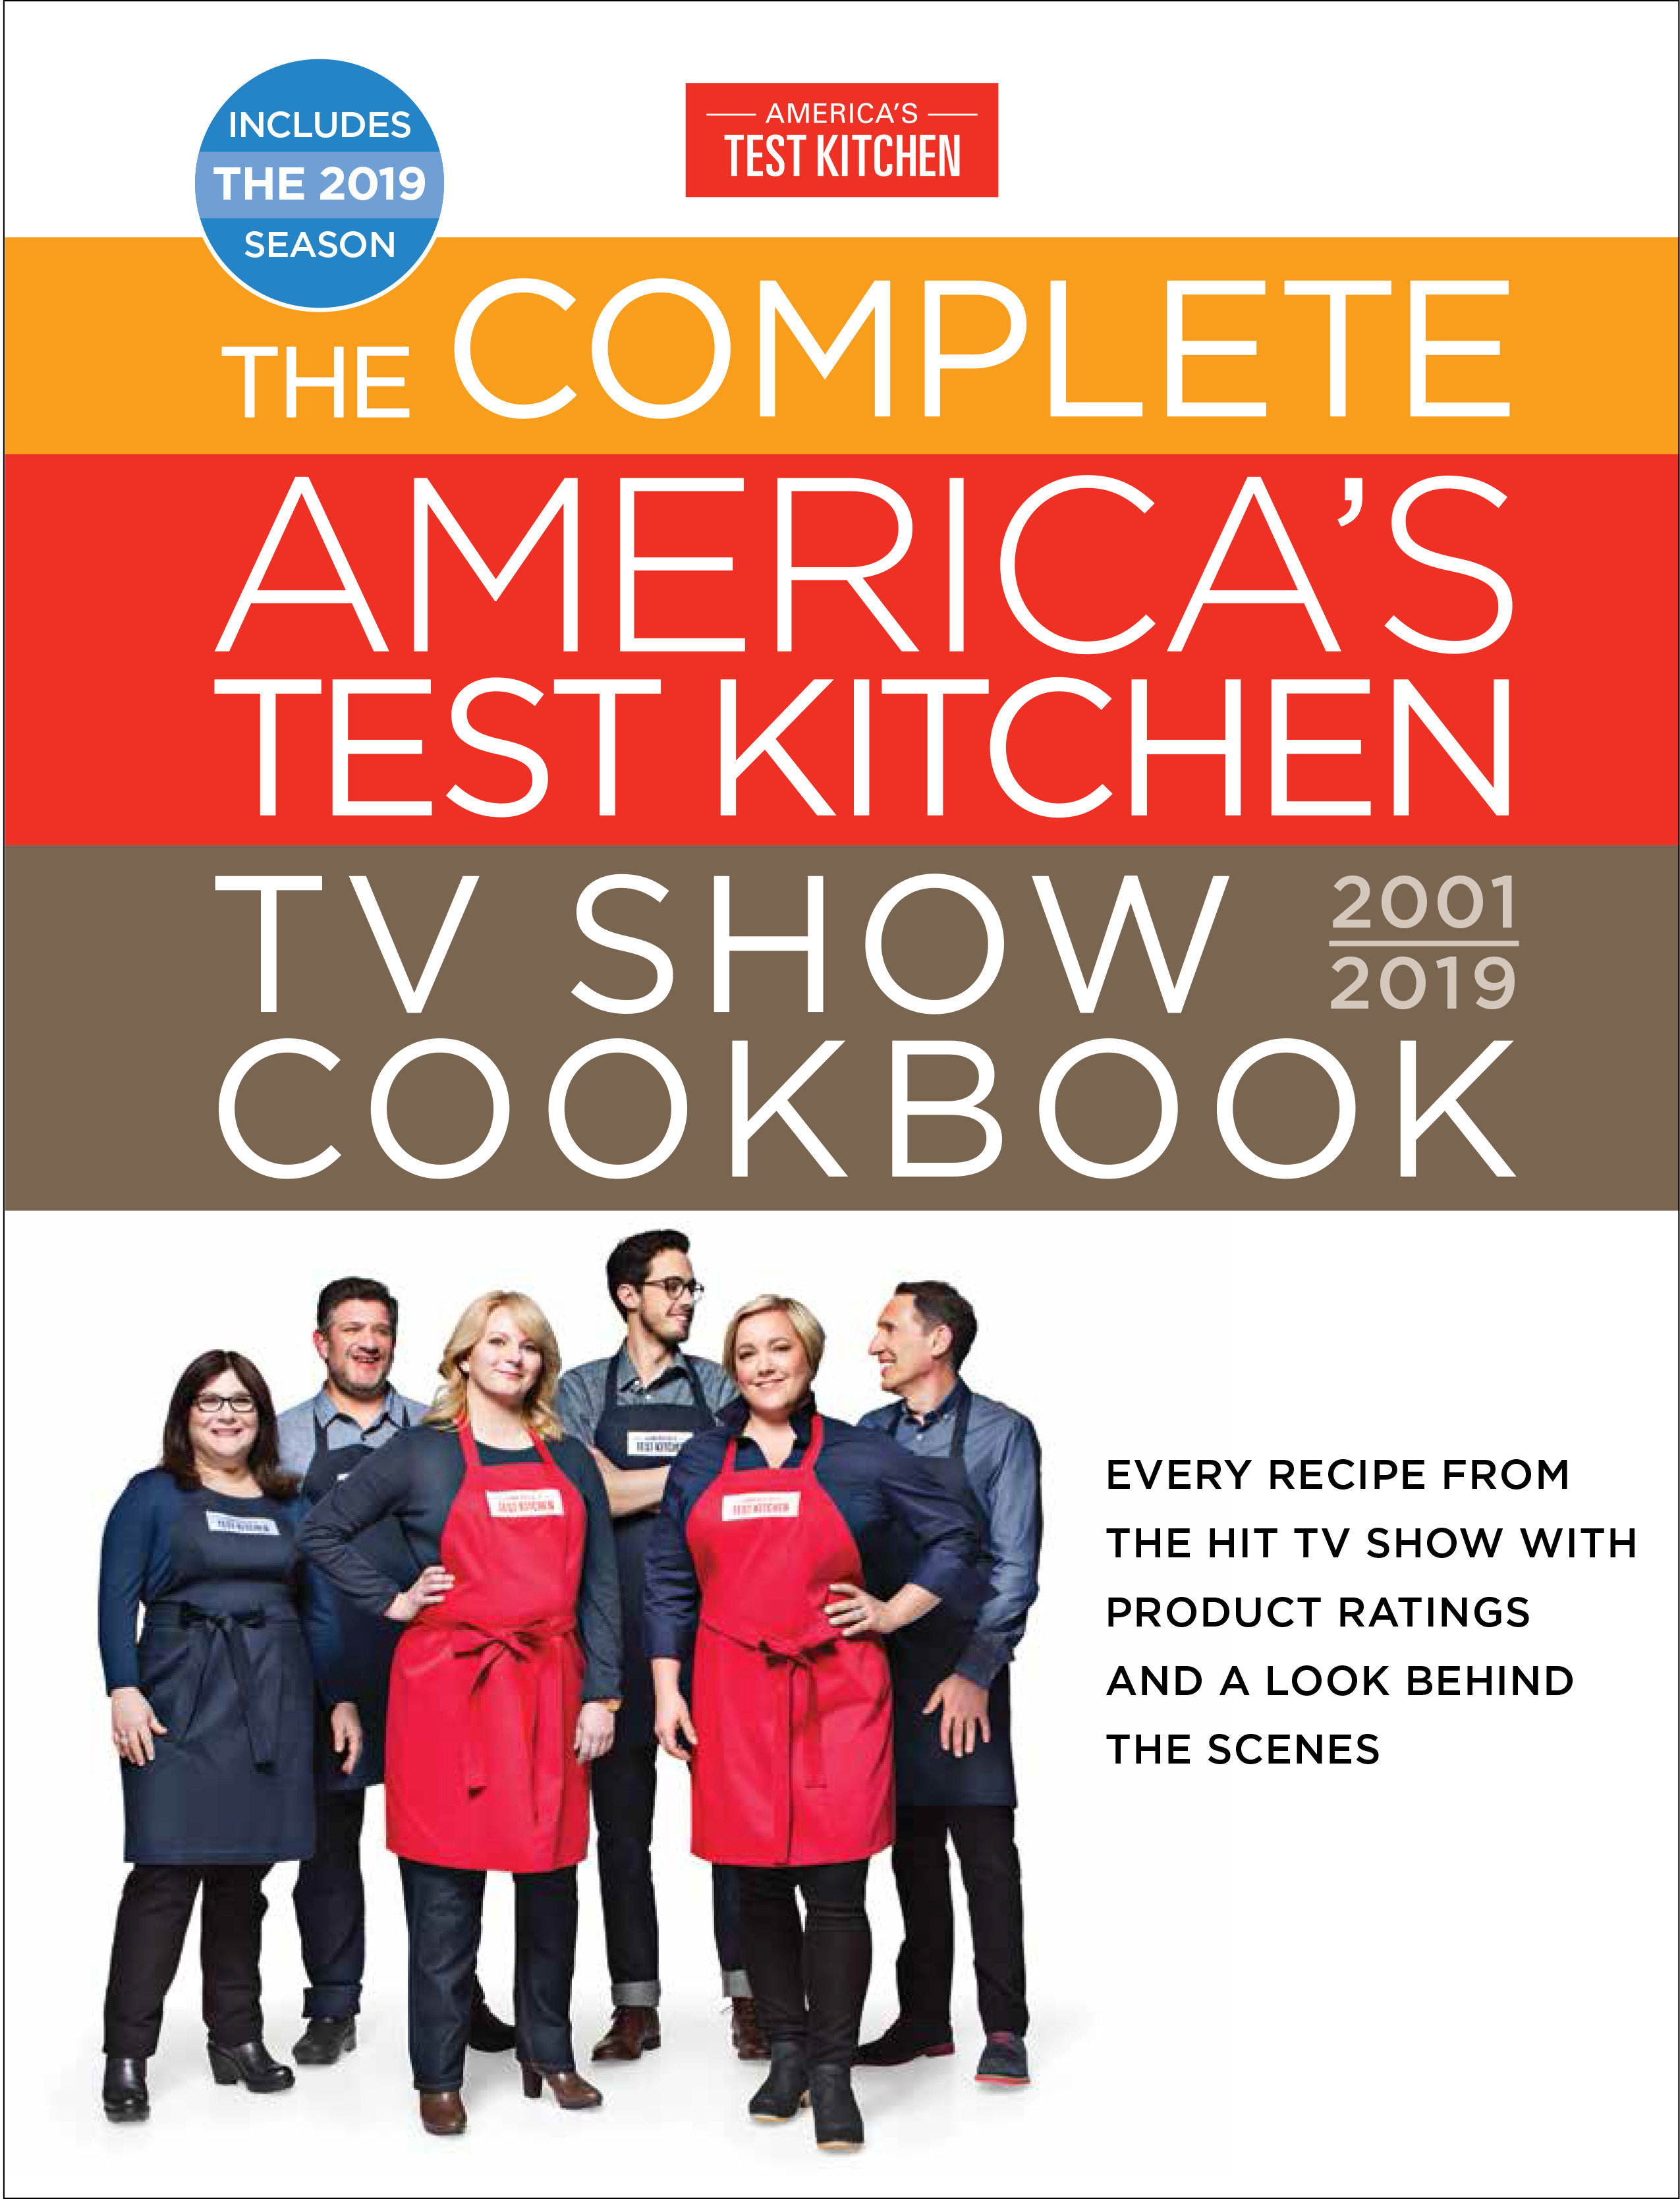 The Complete America's Test Kitchen TV Show Cookbook, 2001-2019 Every Recipe from the Hit TV Show with Product Ratings and a Look Behind the Scenes.